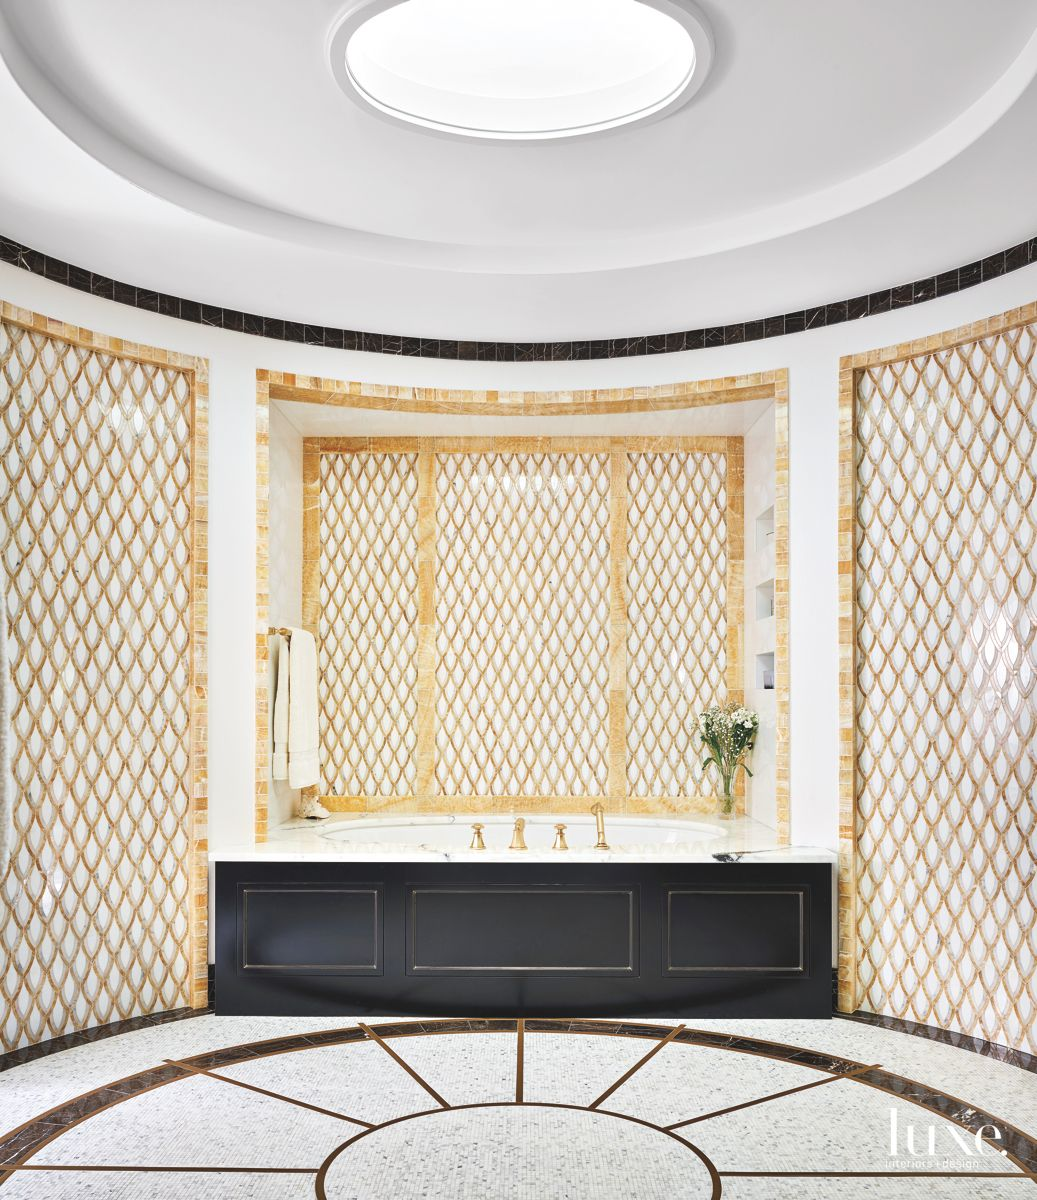 Oval Skylight Gold Master Bathroom with Ornate Pattern